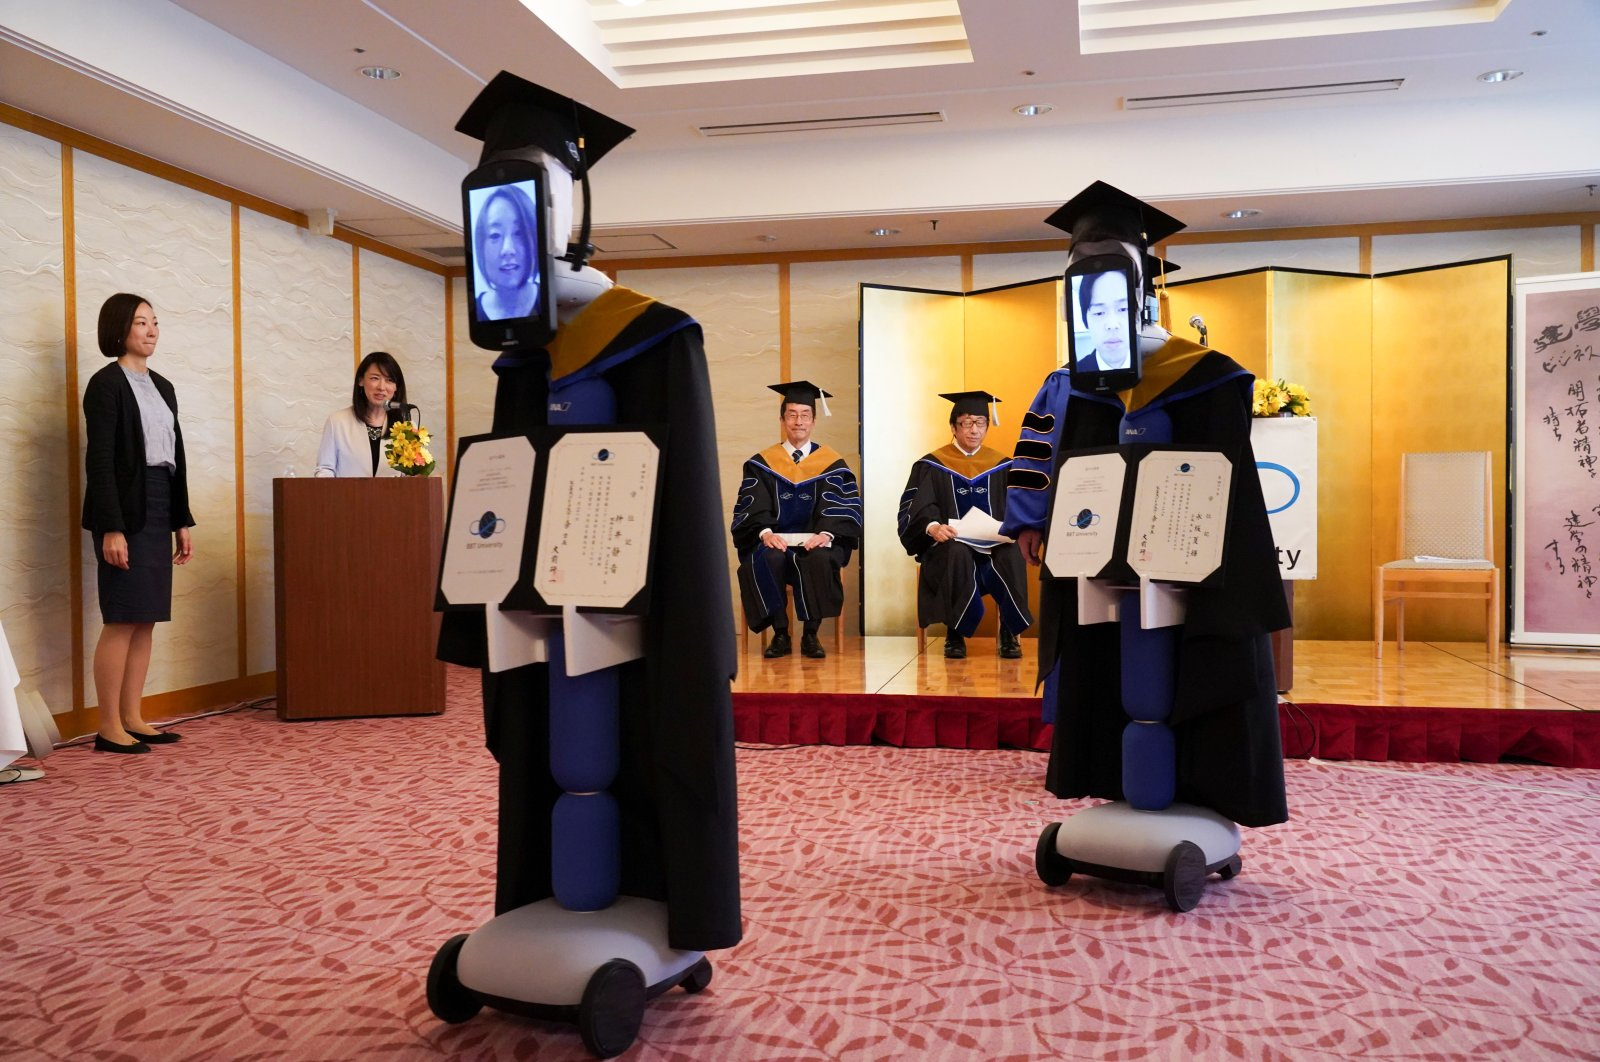 Ipads attached to 'newme' robots replacing graduating students' presence at a ceremony, wear graduation gowns and hats in Tokyo, Japan, Saturday, March 28, 2020. (Reuters Photo)